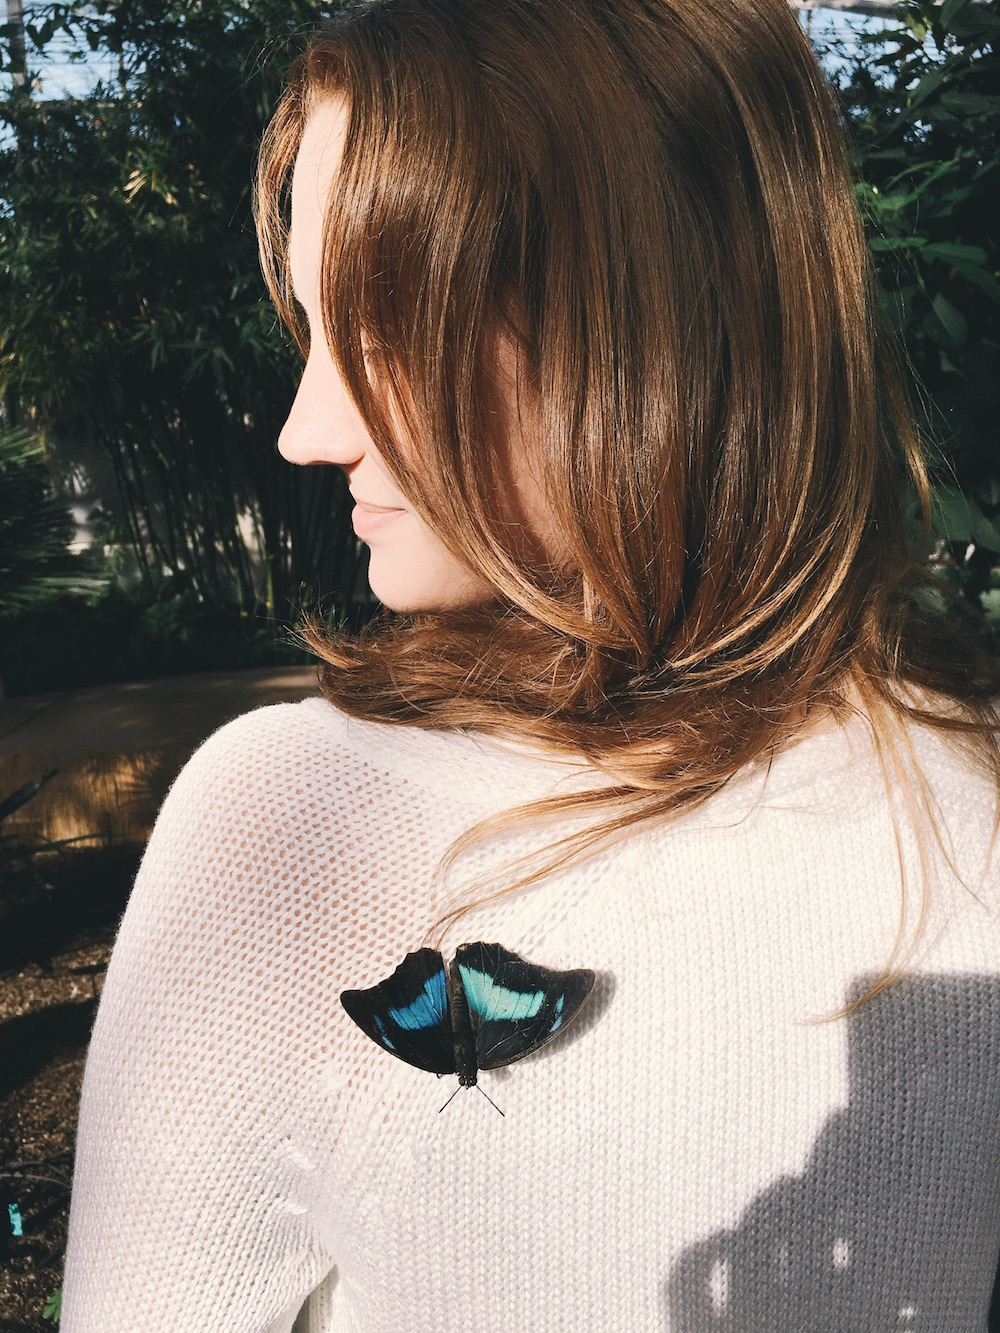 Bright butterfly on girl's shoulder